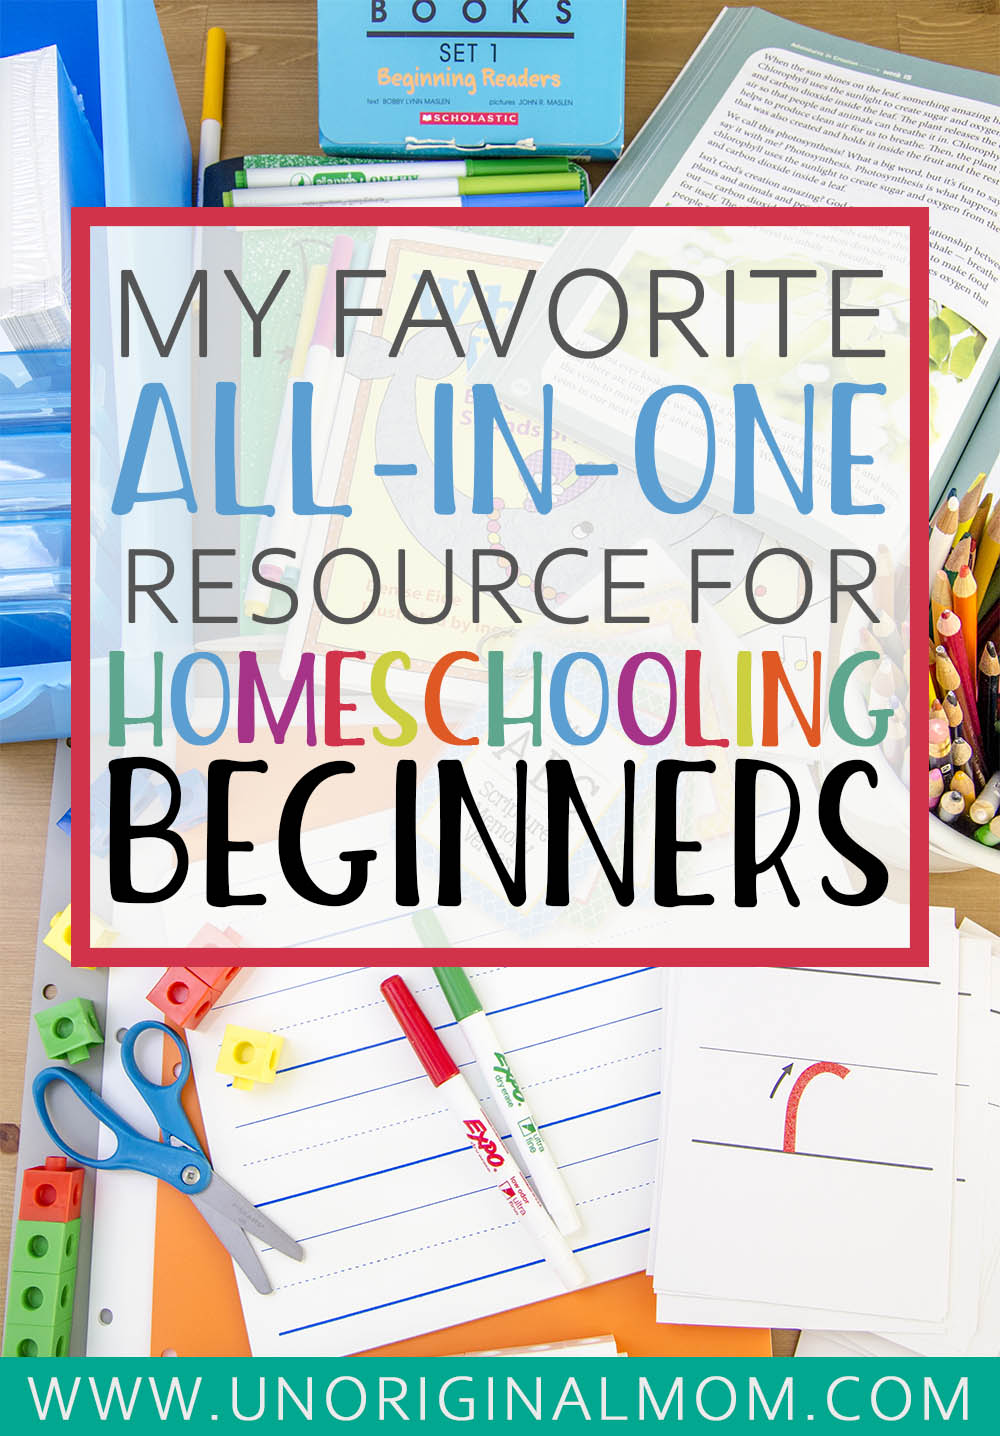 Looking for resources for temporary homeschooling? Here's my review of the Ultimate Homeschooling Bundle and my best picks for homeschooling beginners.